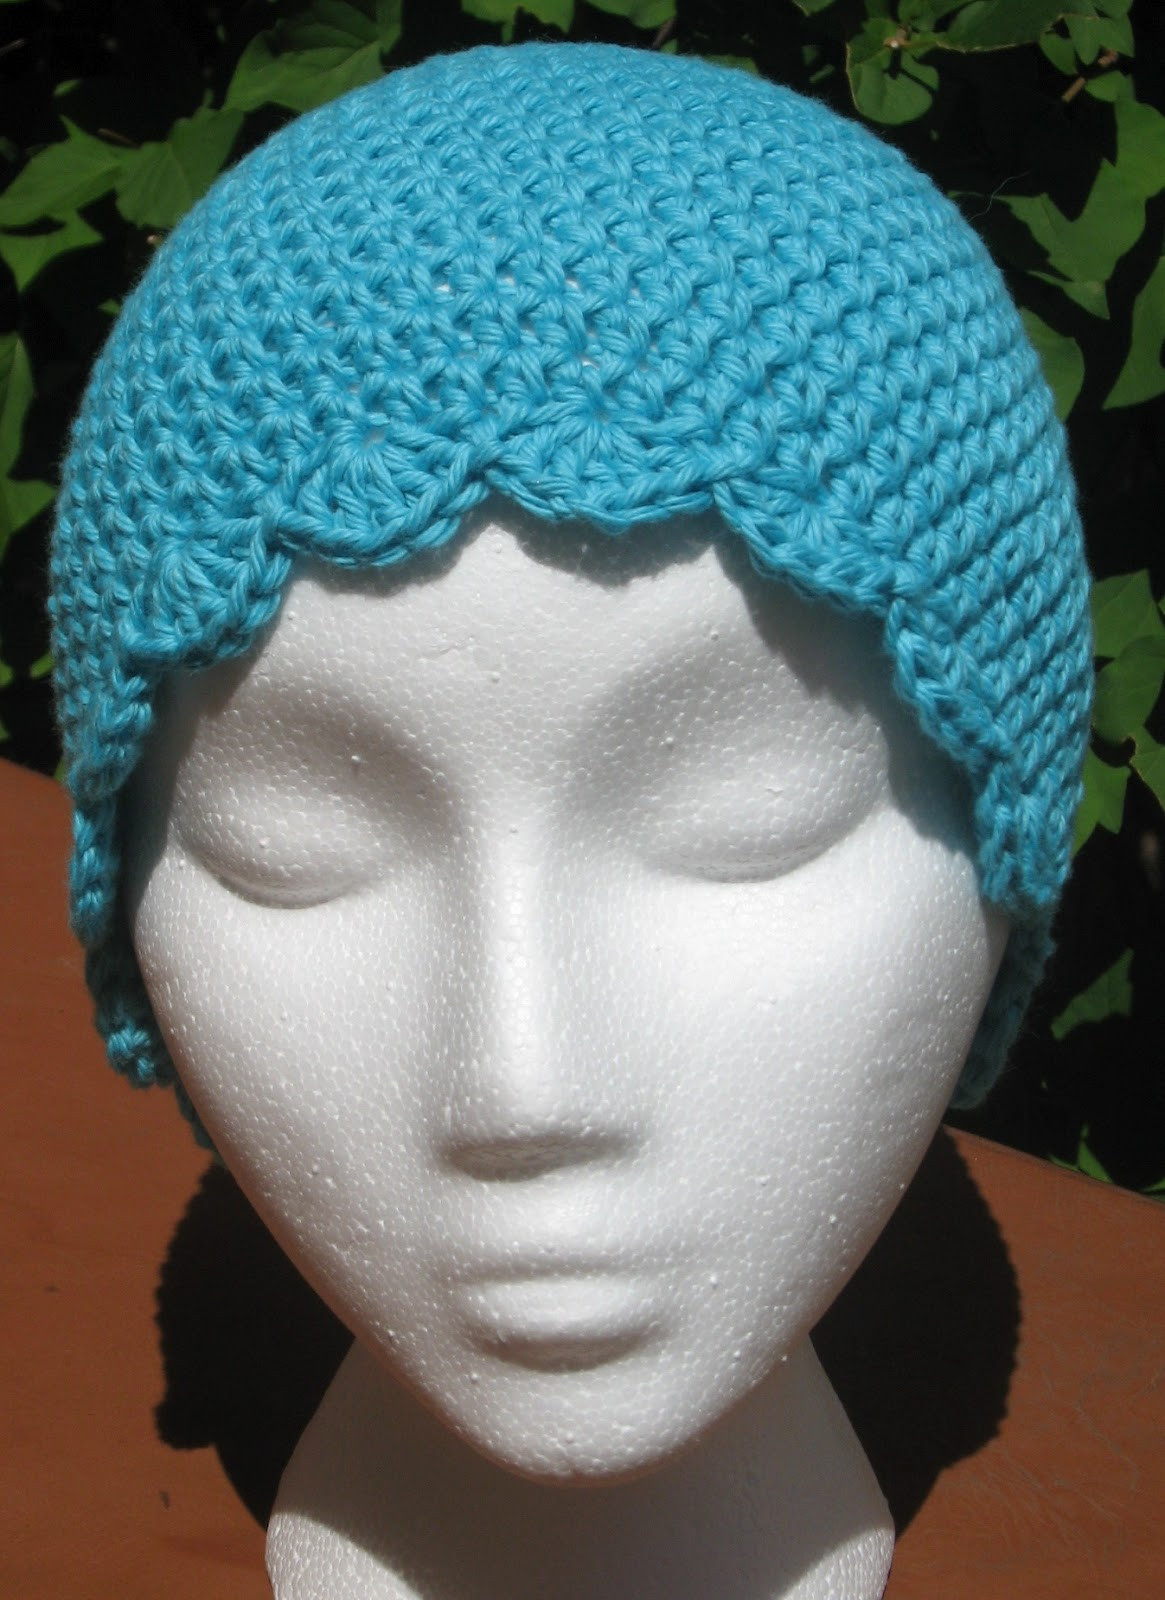 Free Crochet Chemo Hat Patterns Awesome Crochet Projects Crochet Chemo Sleep Cap Of Awesome 43 Ideas Free Crochet Chemo Hat Patterns